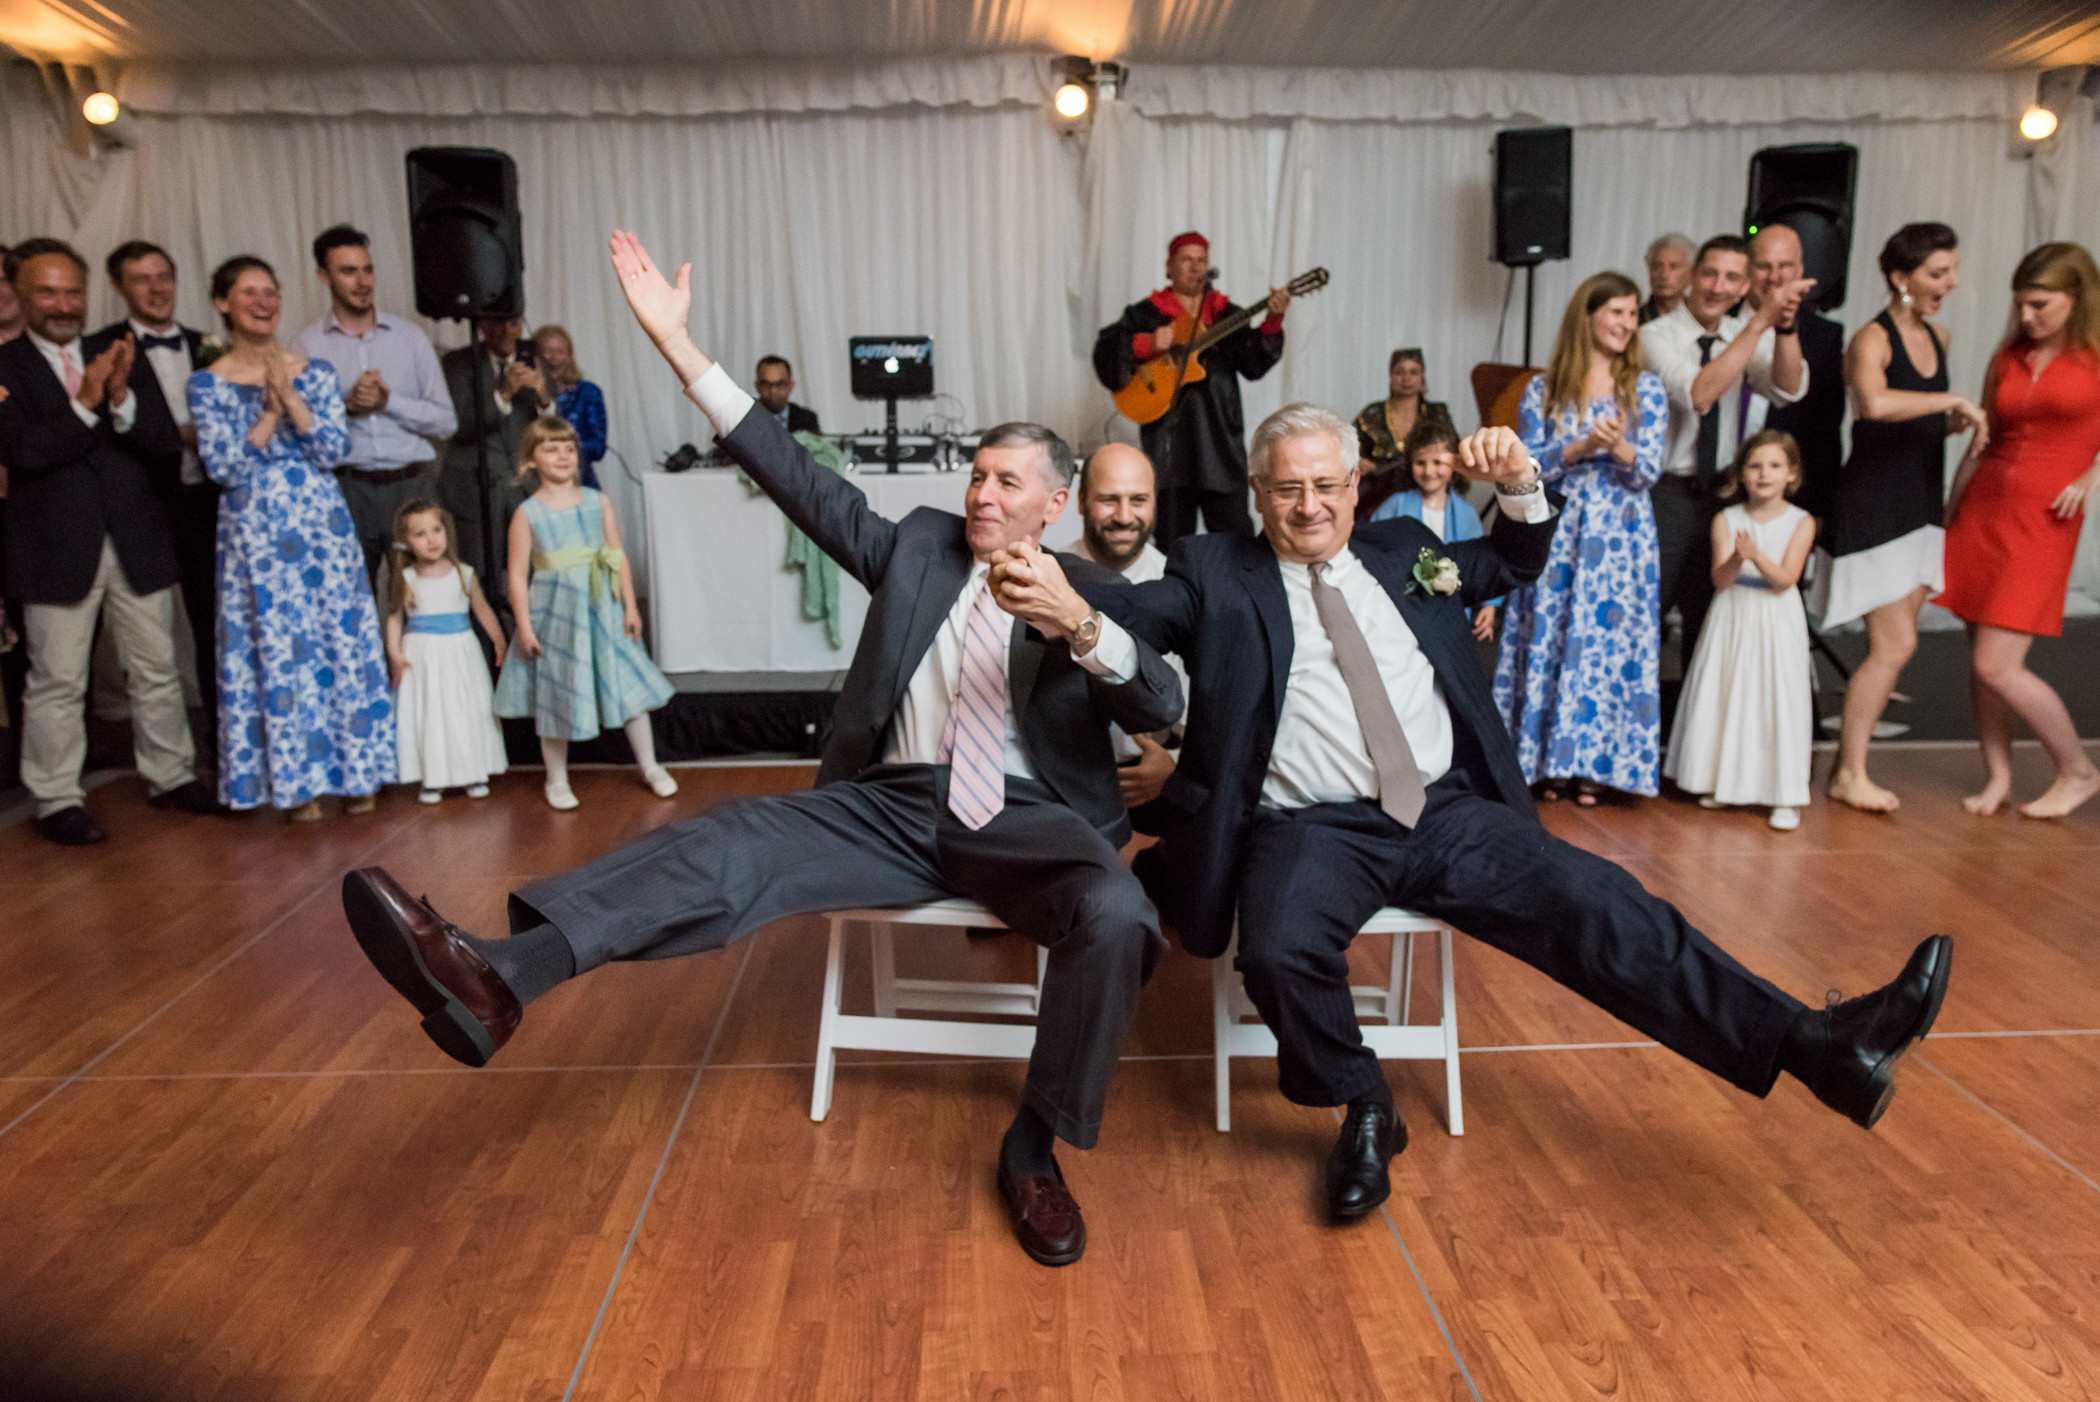 Stefy Hilmer Photography-russian dancing at wedding reception at Lyndhurst Castle in Tarrytown.jpg